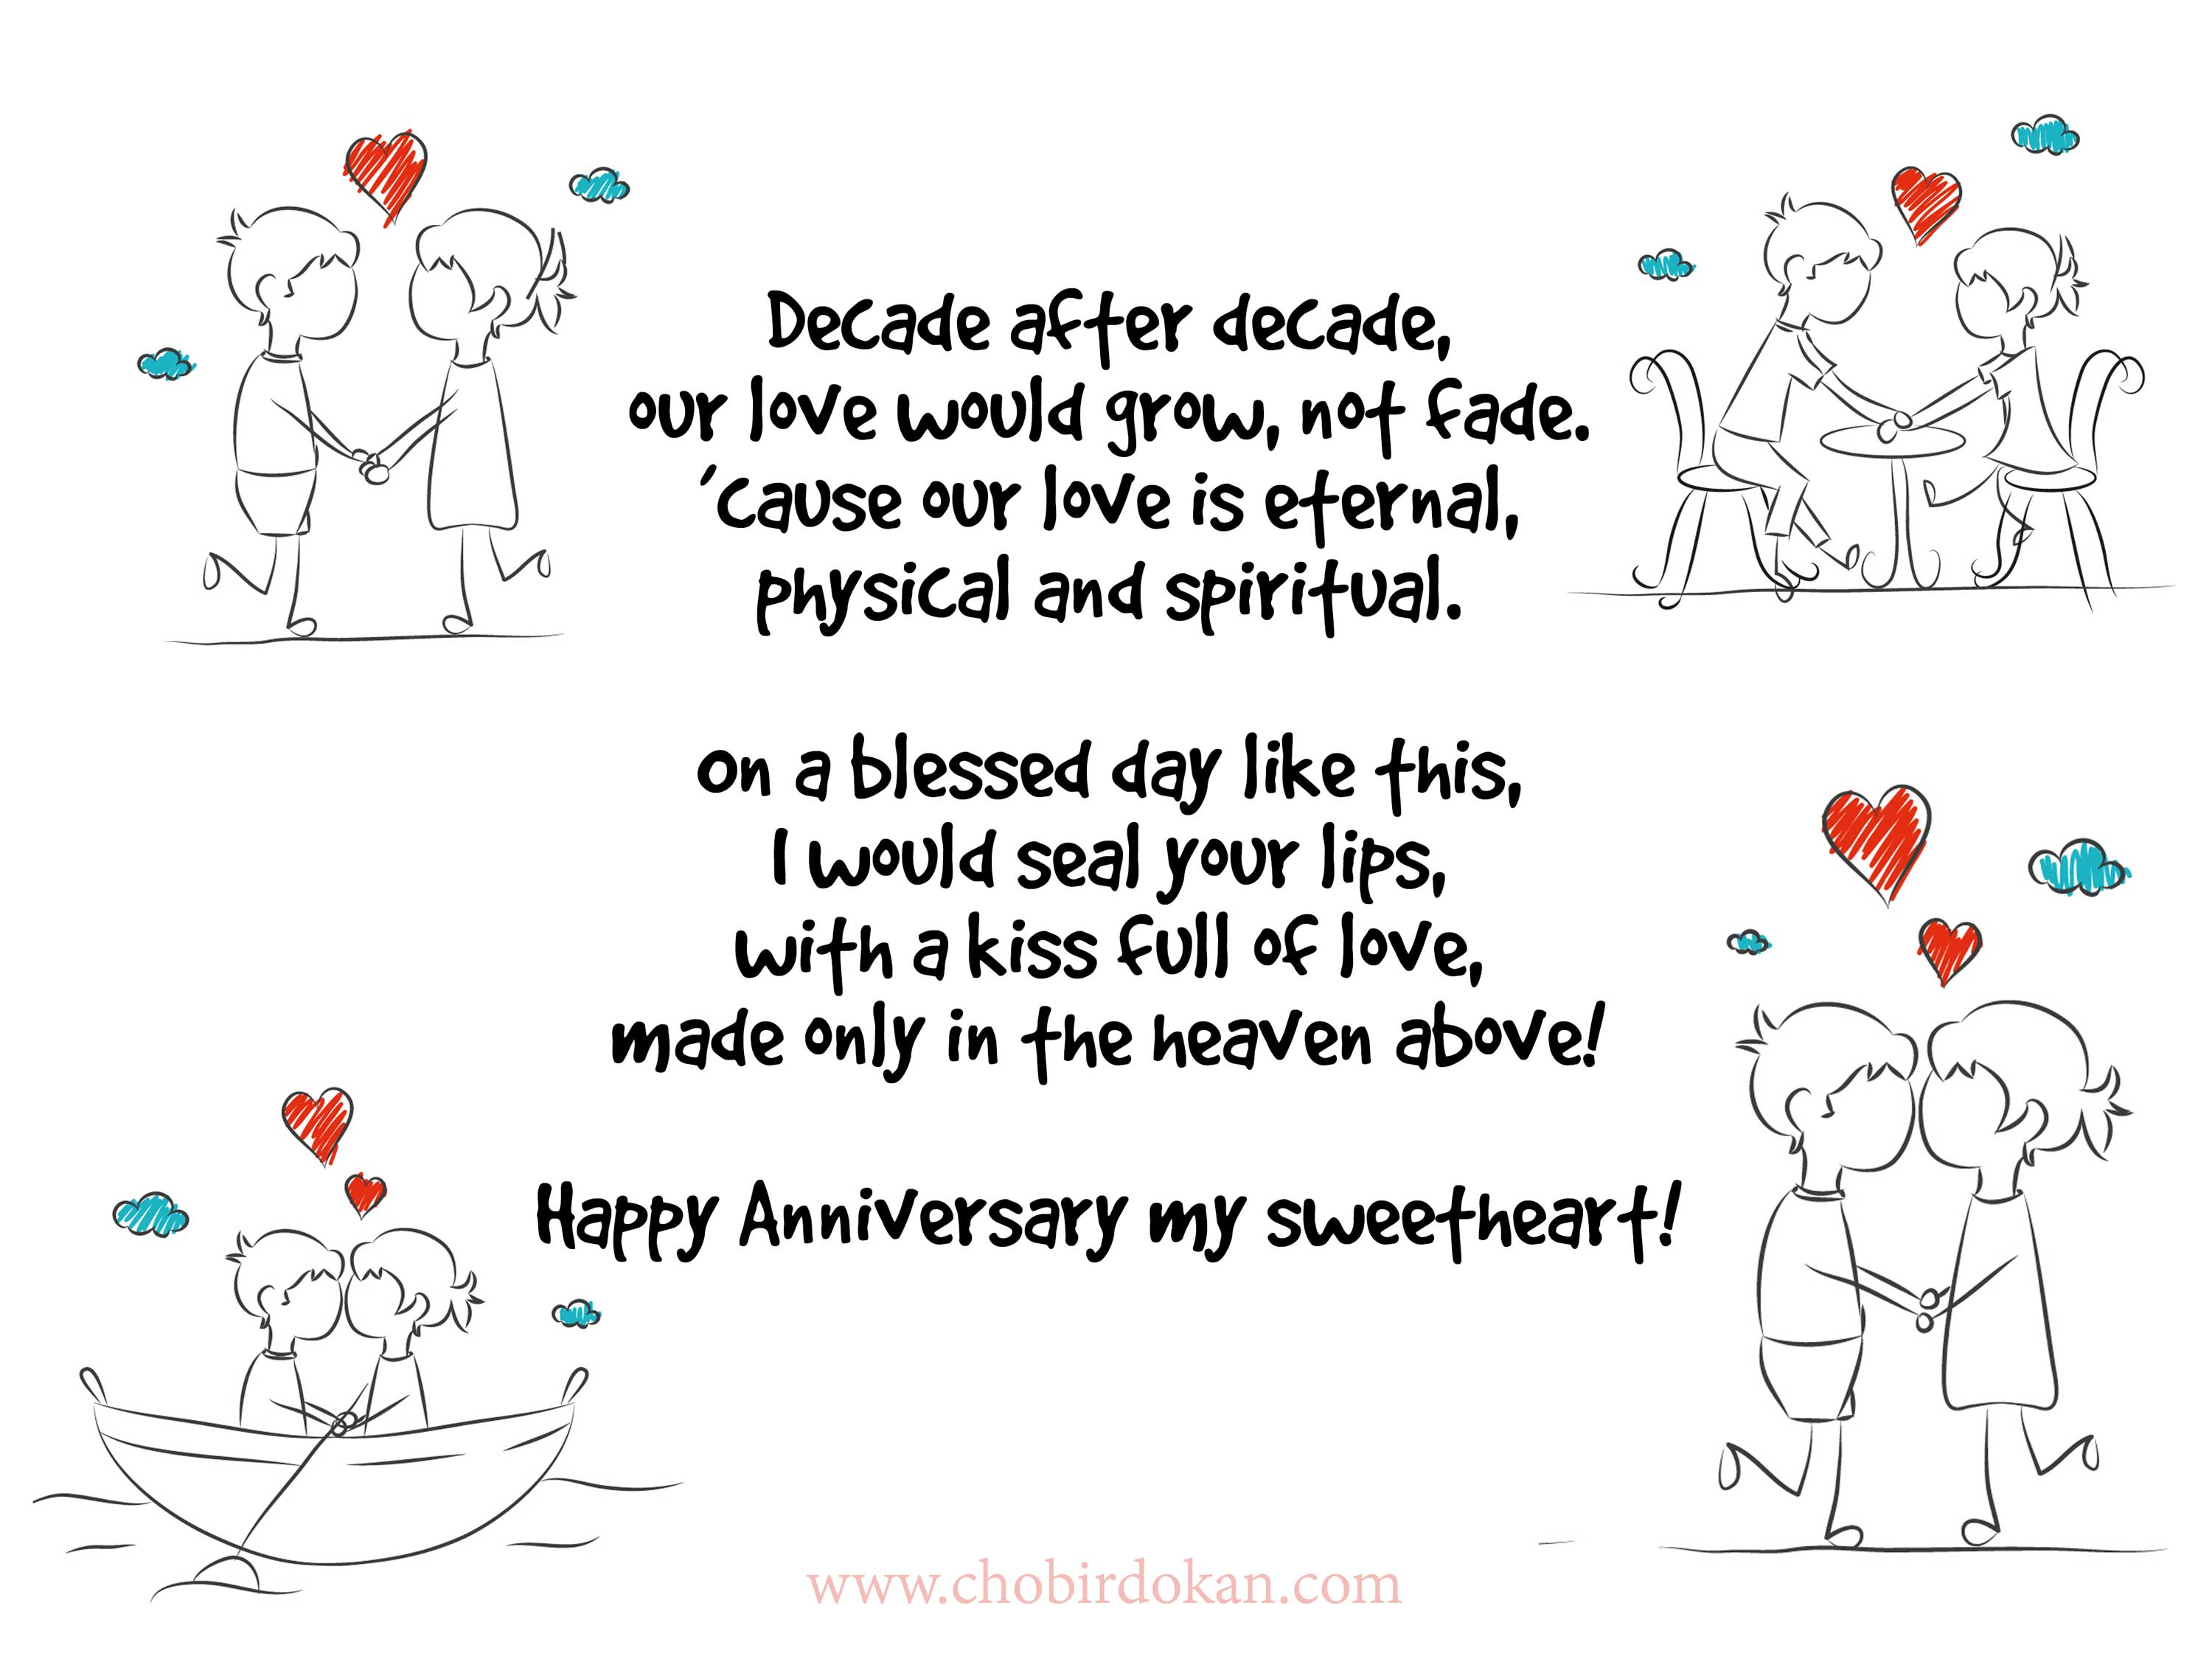 Romantic anniversary poems for her wife or girlfriend